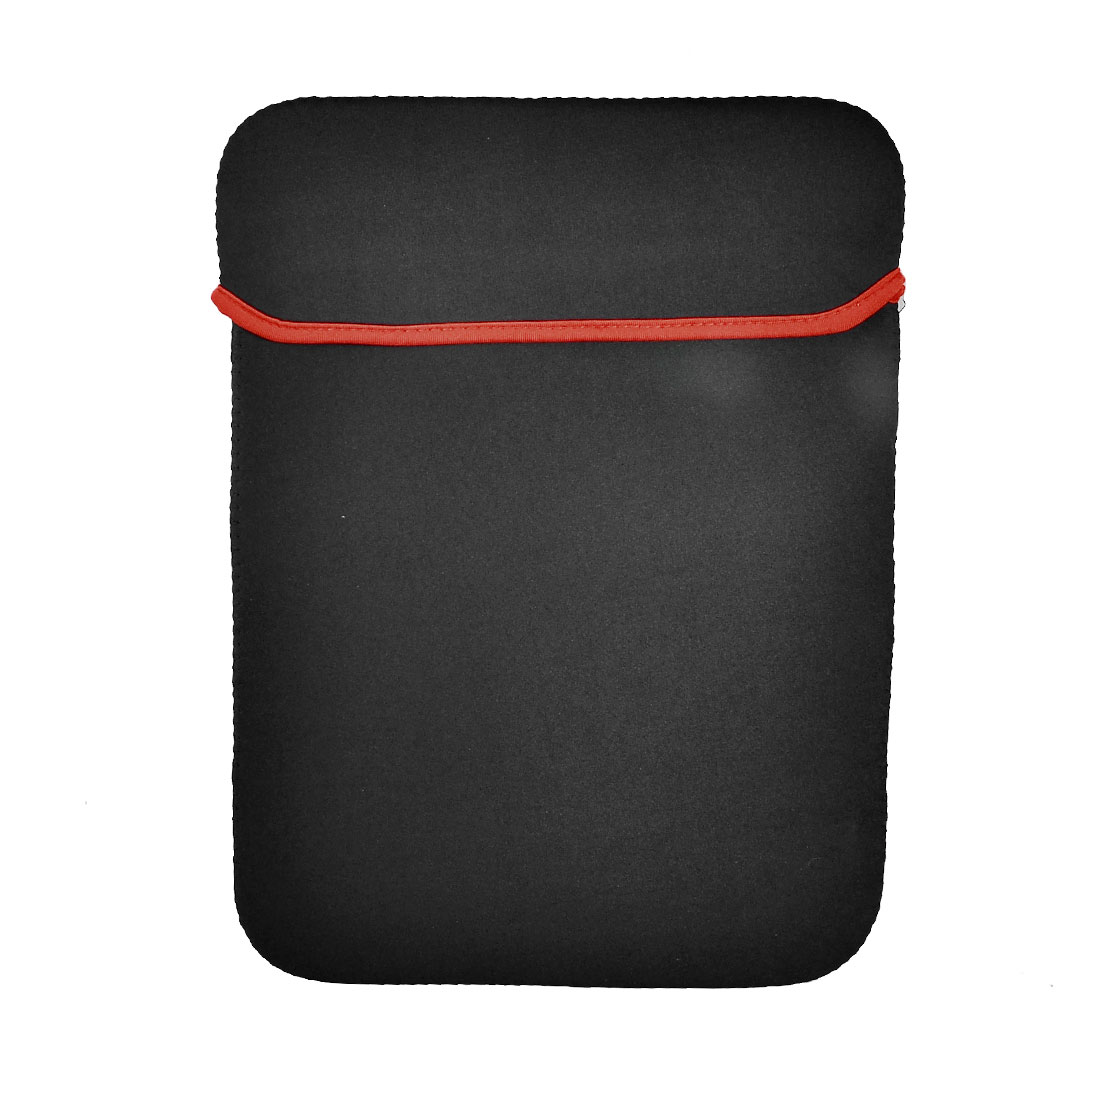 "14"" Widescreen Leptop Bag Vertical Neoprene Notebook Case Black Red"